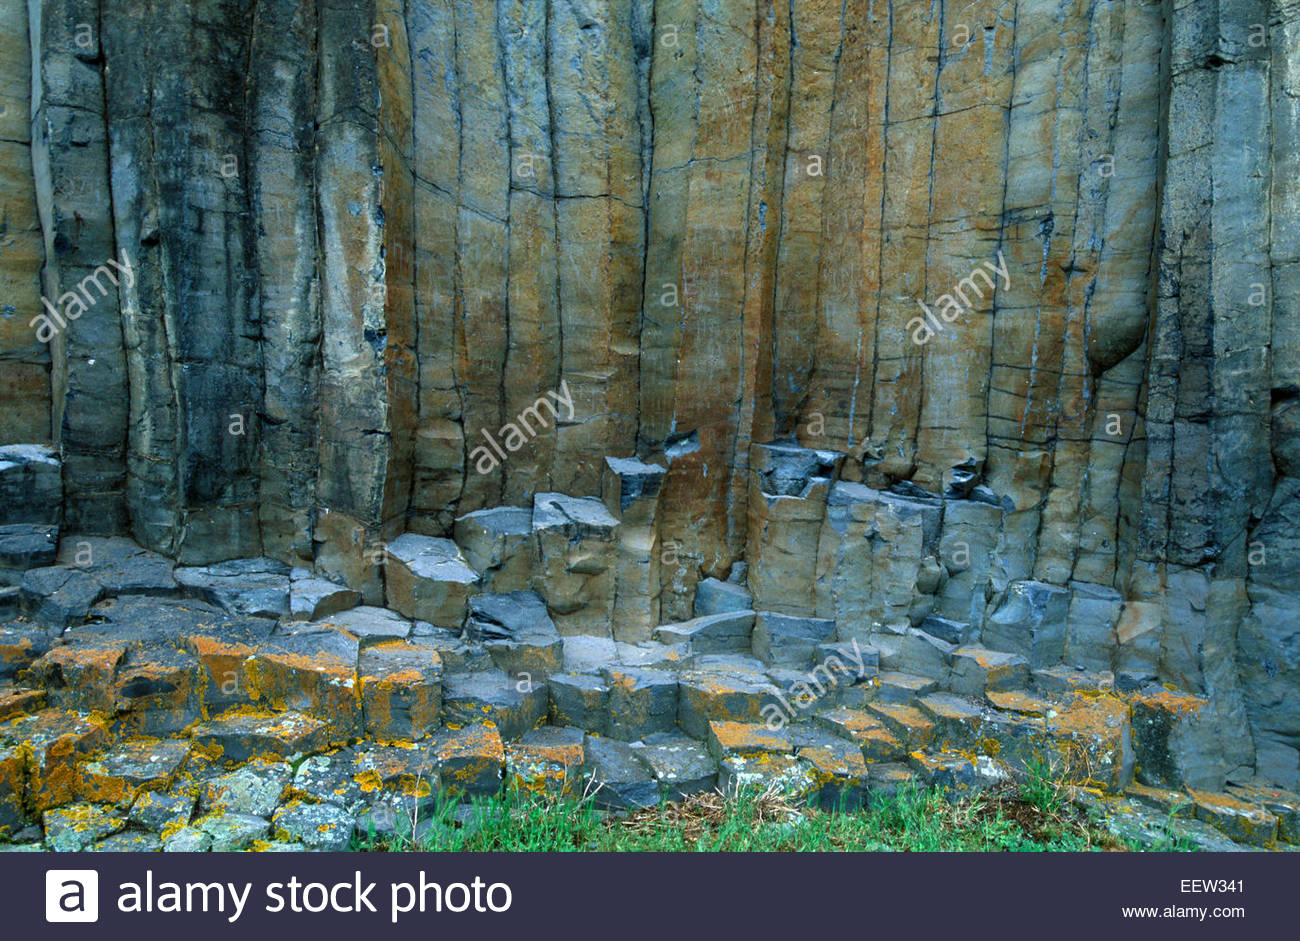 The volcanic rocks of Lavoute-Chilhac village, Allier valley, Auvergne, France. Legend of France - Stock Image